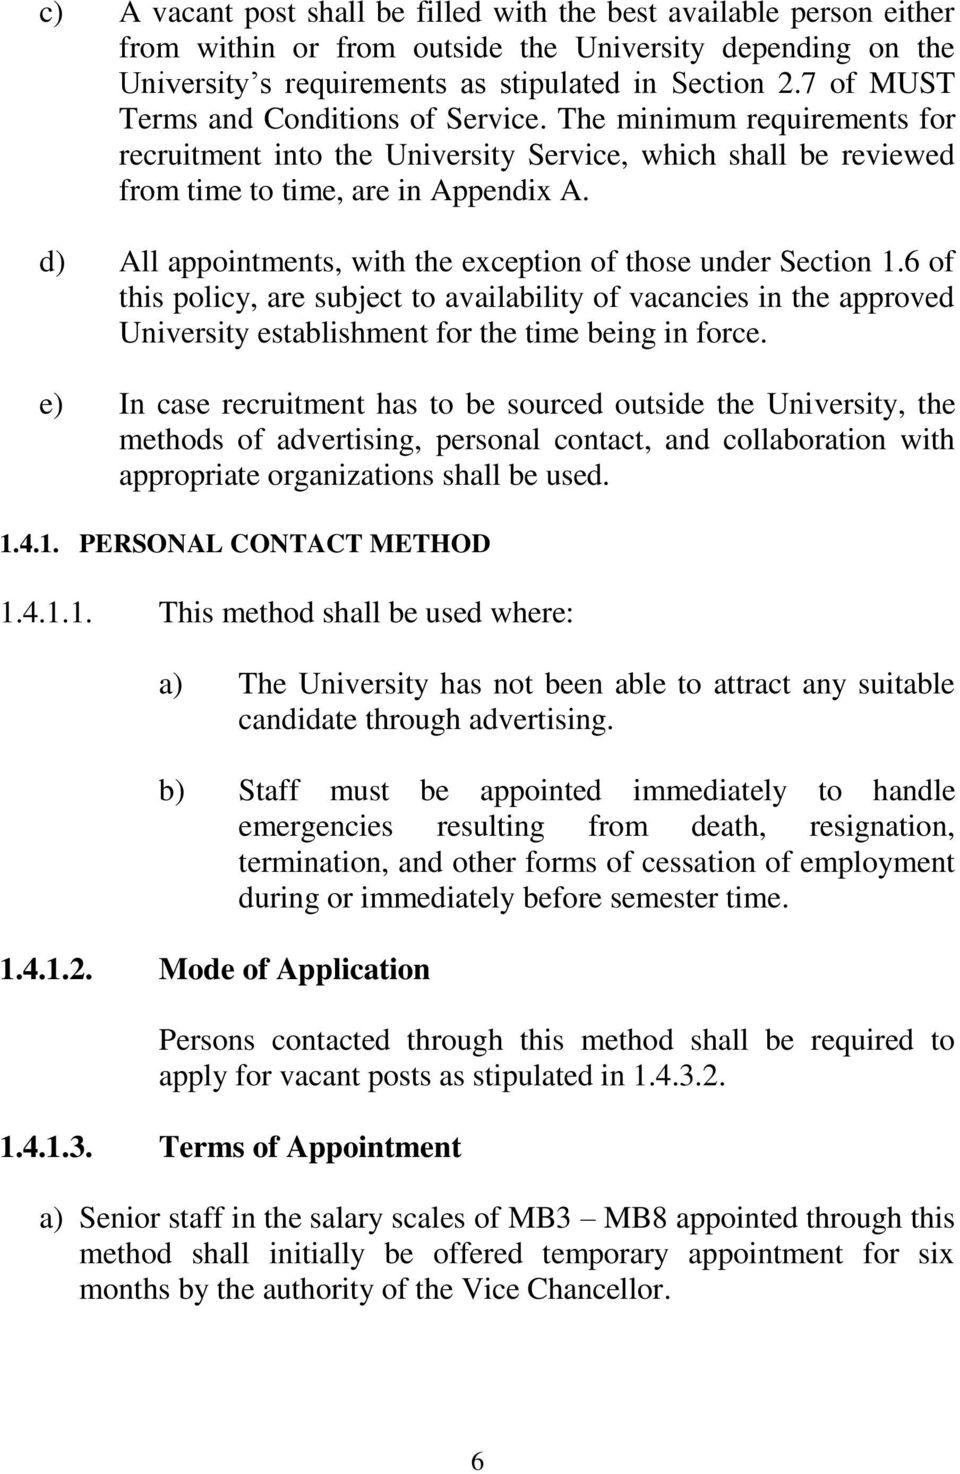 d) All appointments, with the exception of those under Section 1.6 of this policy, are subject to availability of vacancies in the approved University establishment for the time being in force.